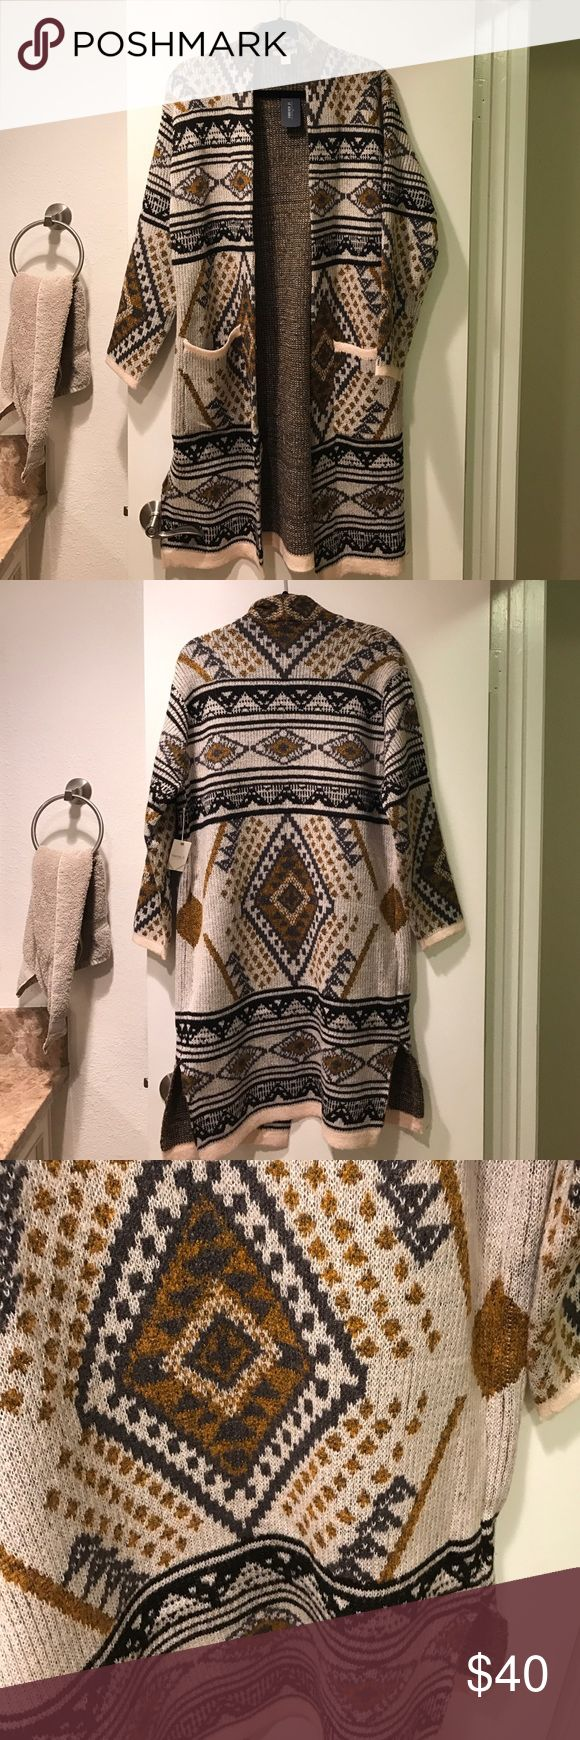 Tribal Print Cardigan Brand new with tags Forever 21 Sweaters Cardigans